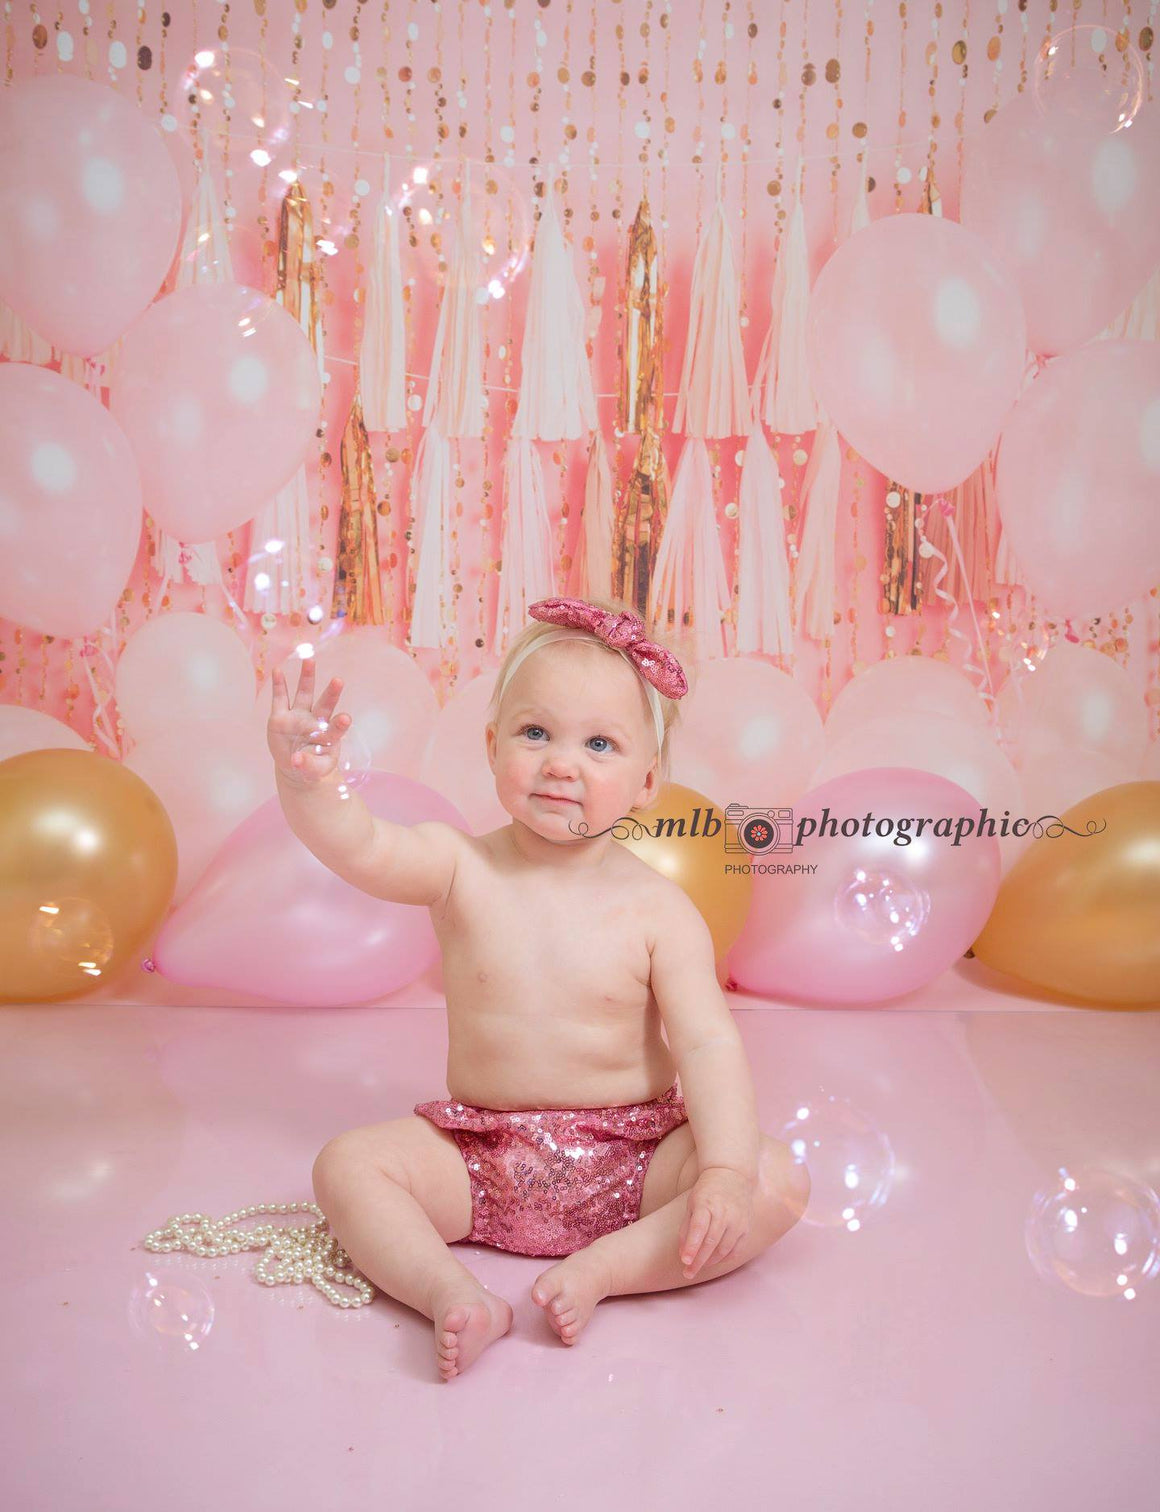 Girls Sparkly Pink Pants and Headband - 12-18 mths - Photography